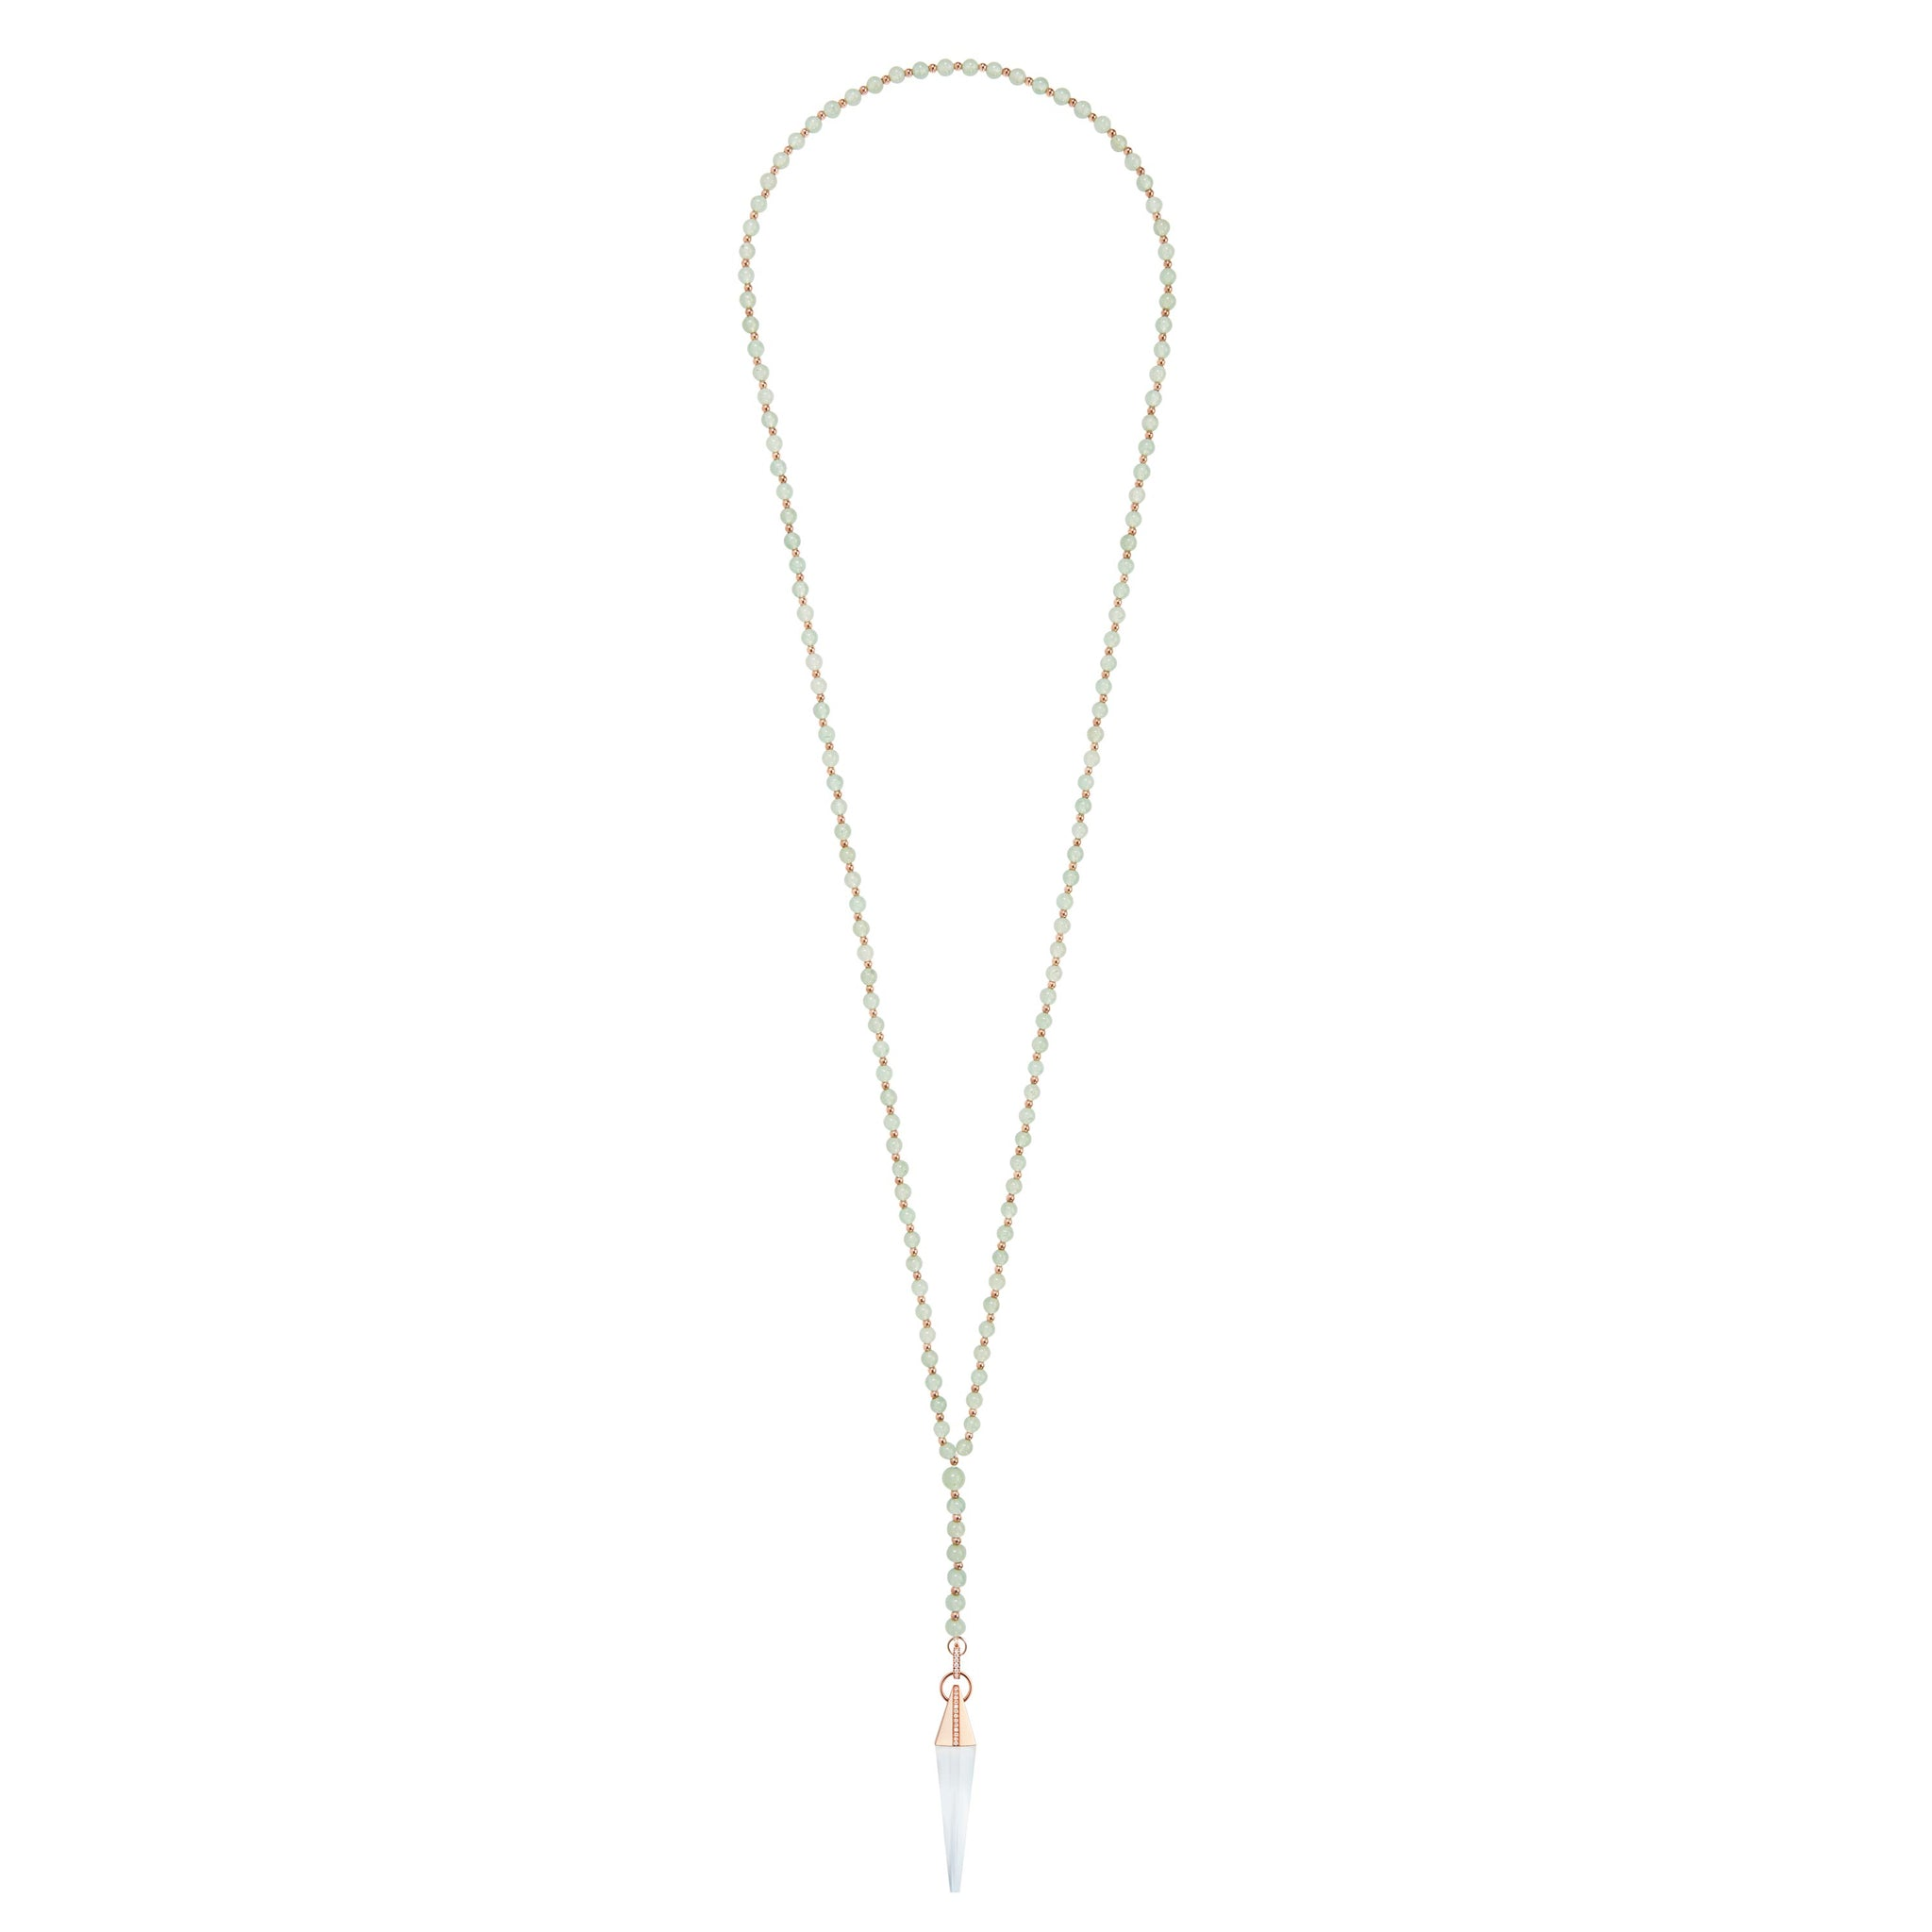 Green Aventurine Crystal Spear Necklace